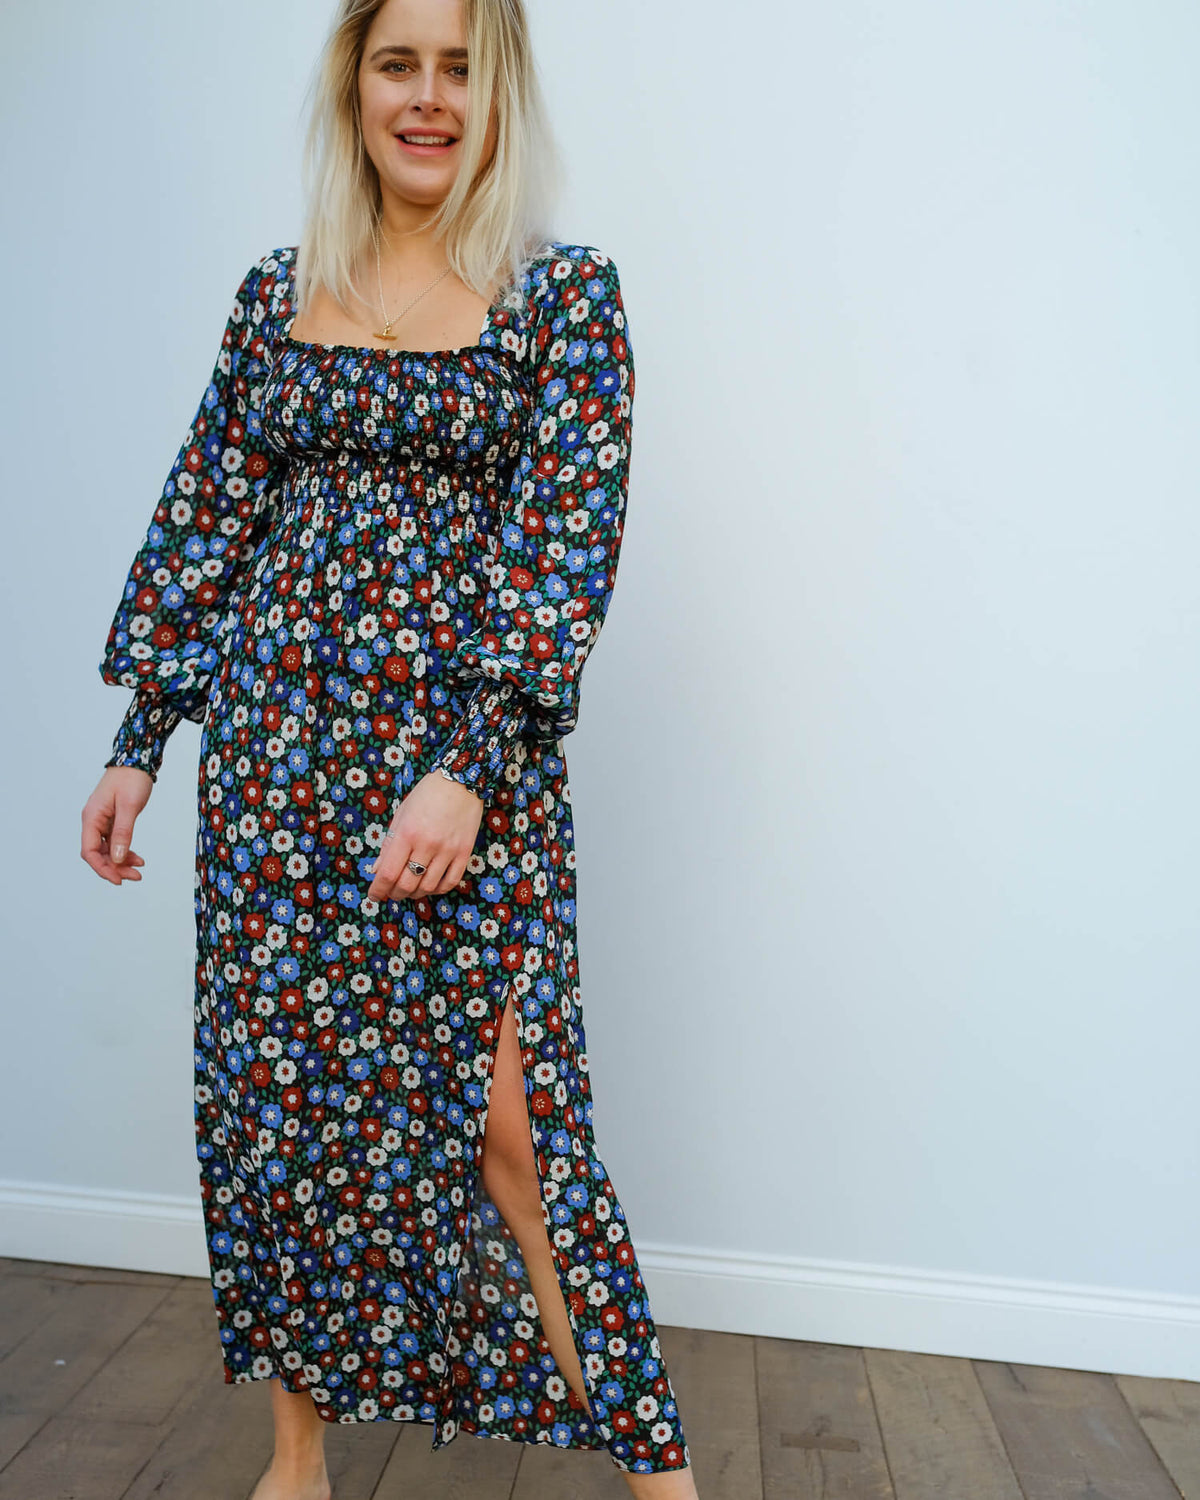 RIXO Marie dress in micro floral blue green red